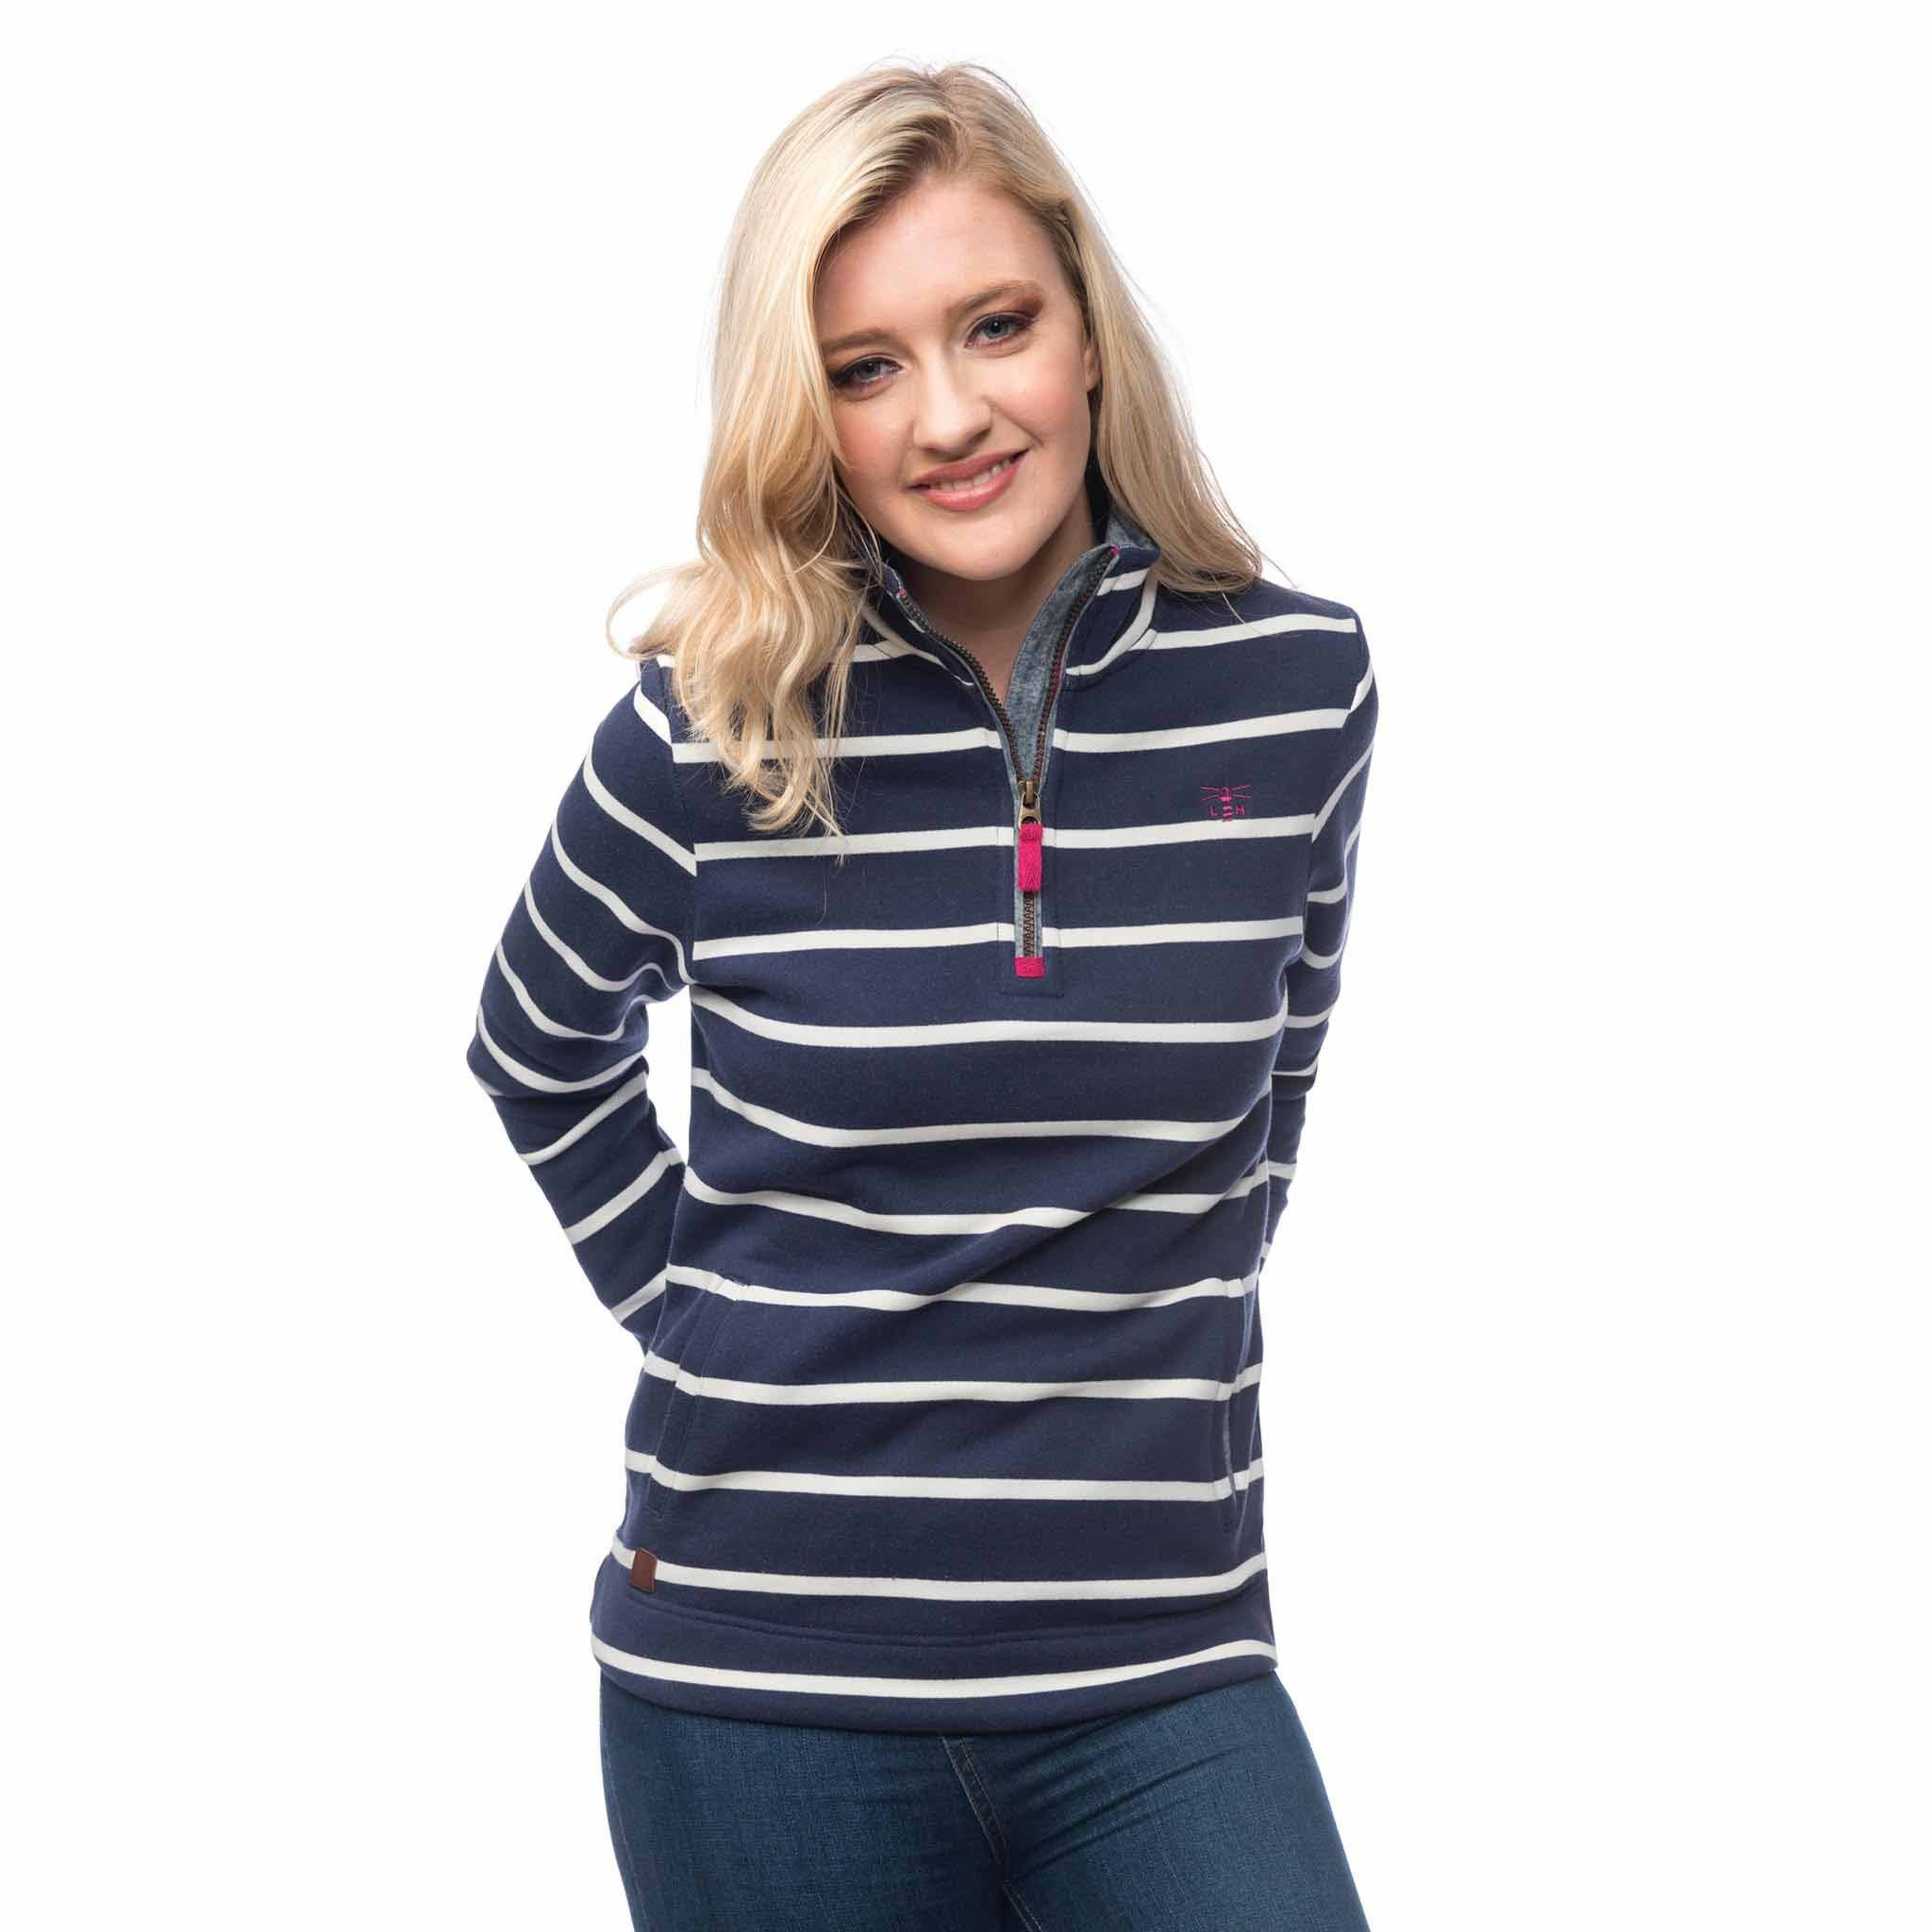 Skye Half Zip Cotton Sweatshirt